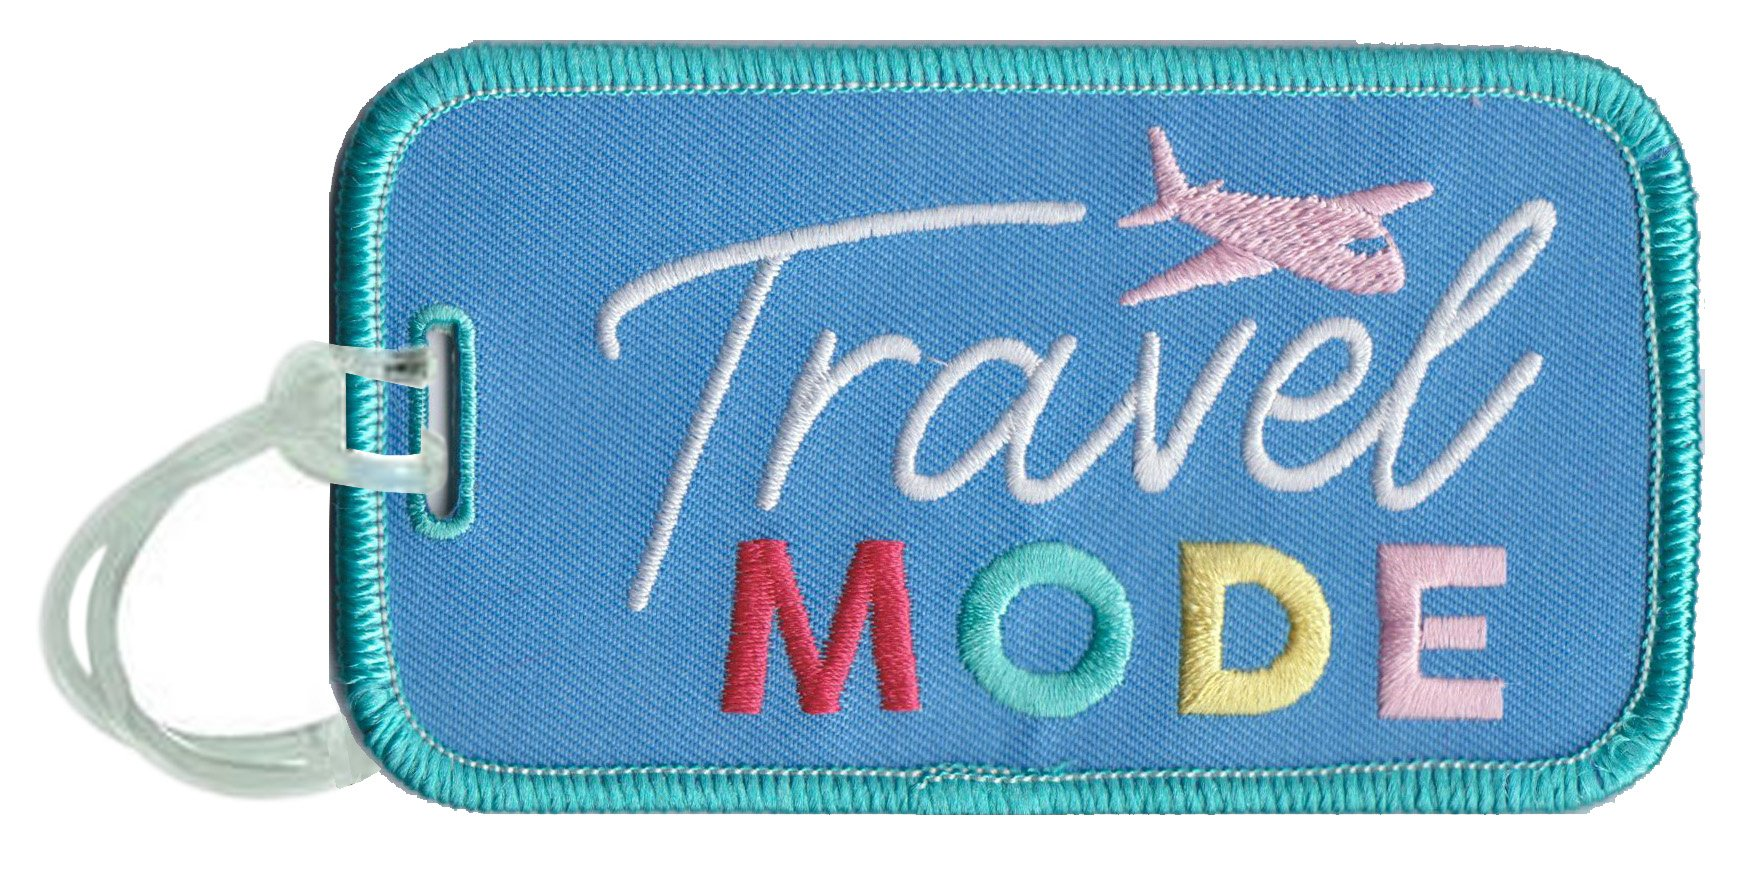 Travel Mode Luggage Tag